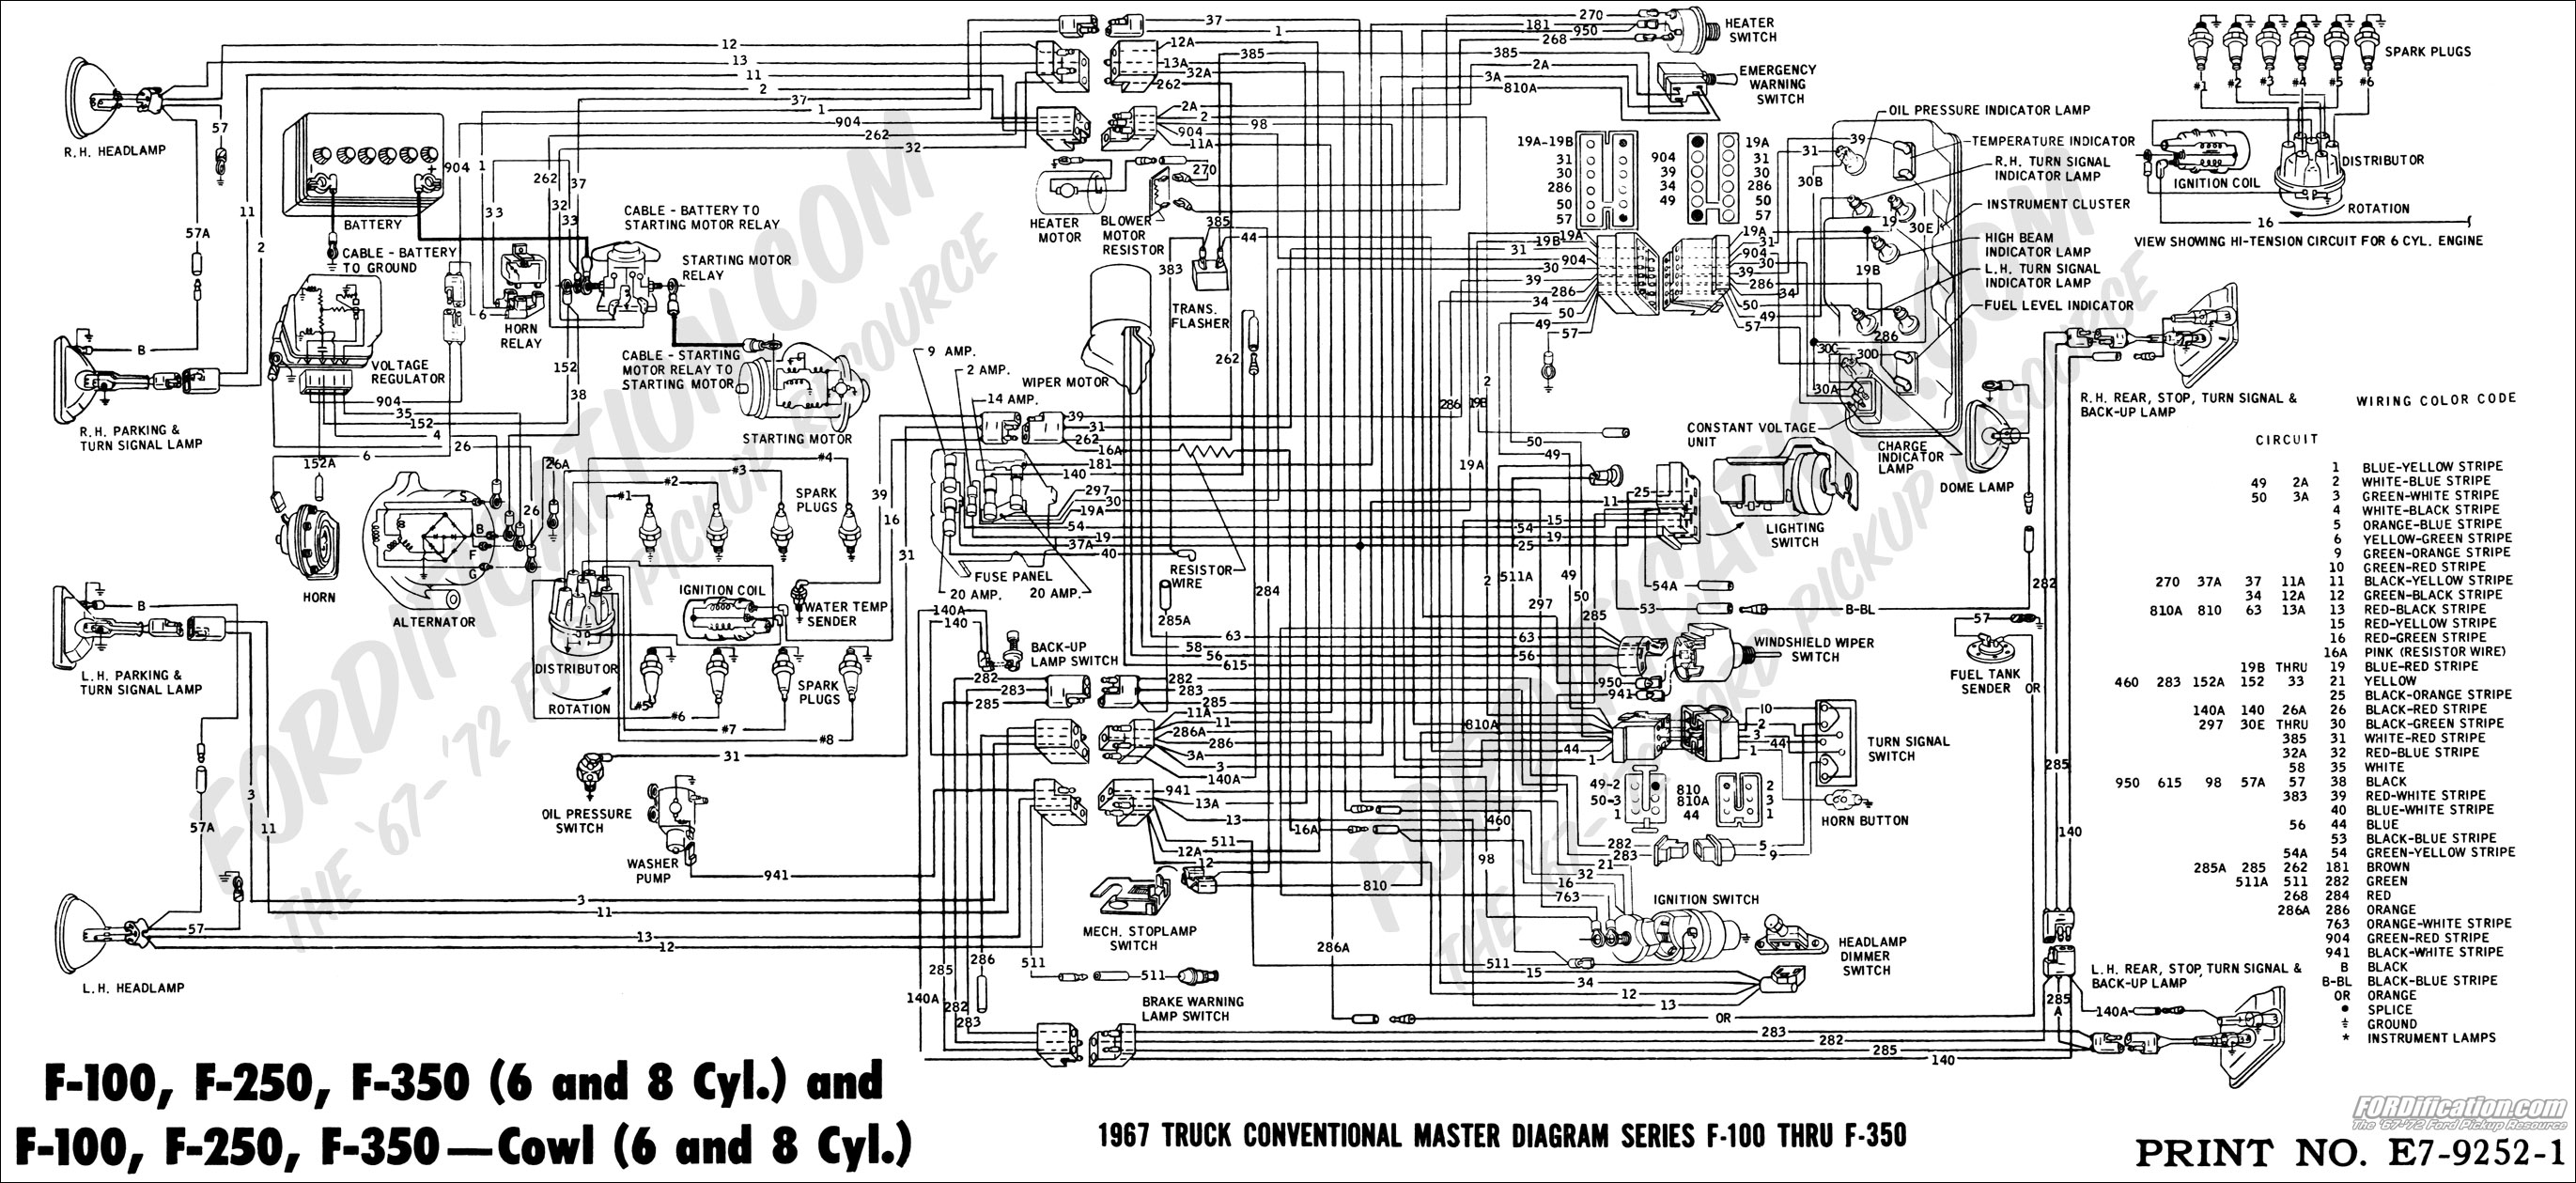 67masterdiagram ford truck technical drawings and schematics section h wiring ford f150 wiring harness diagram at panicattacktreatment.co